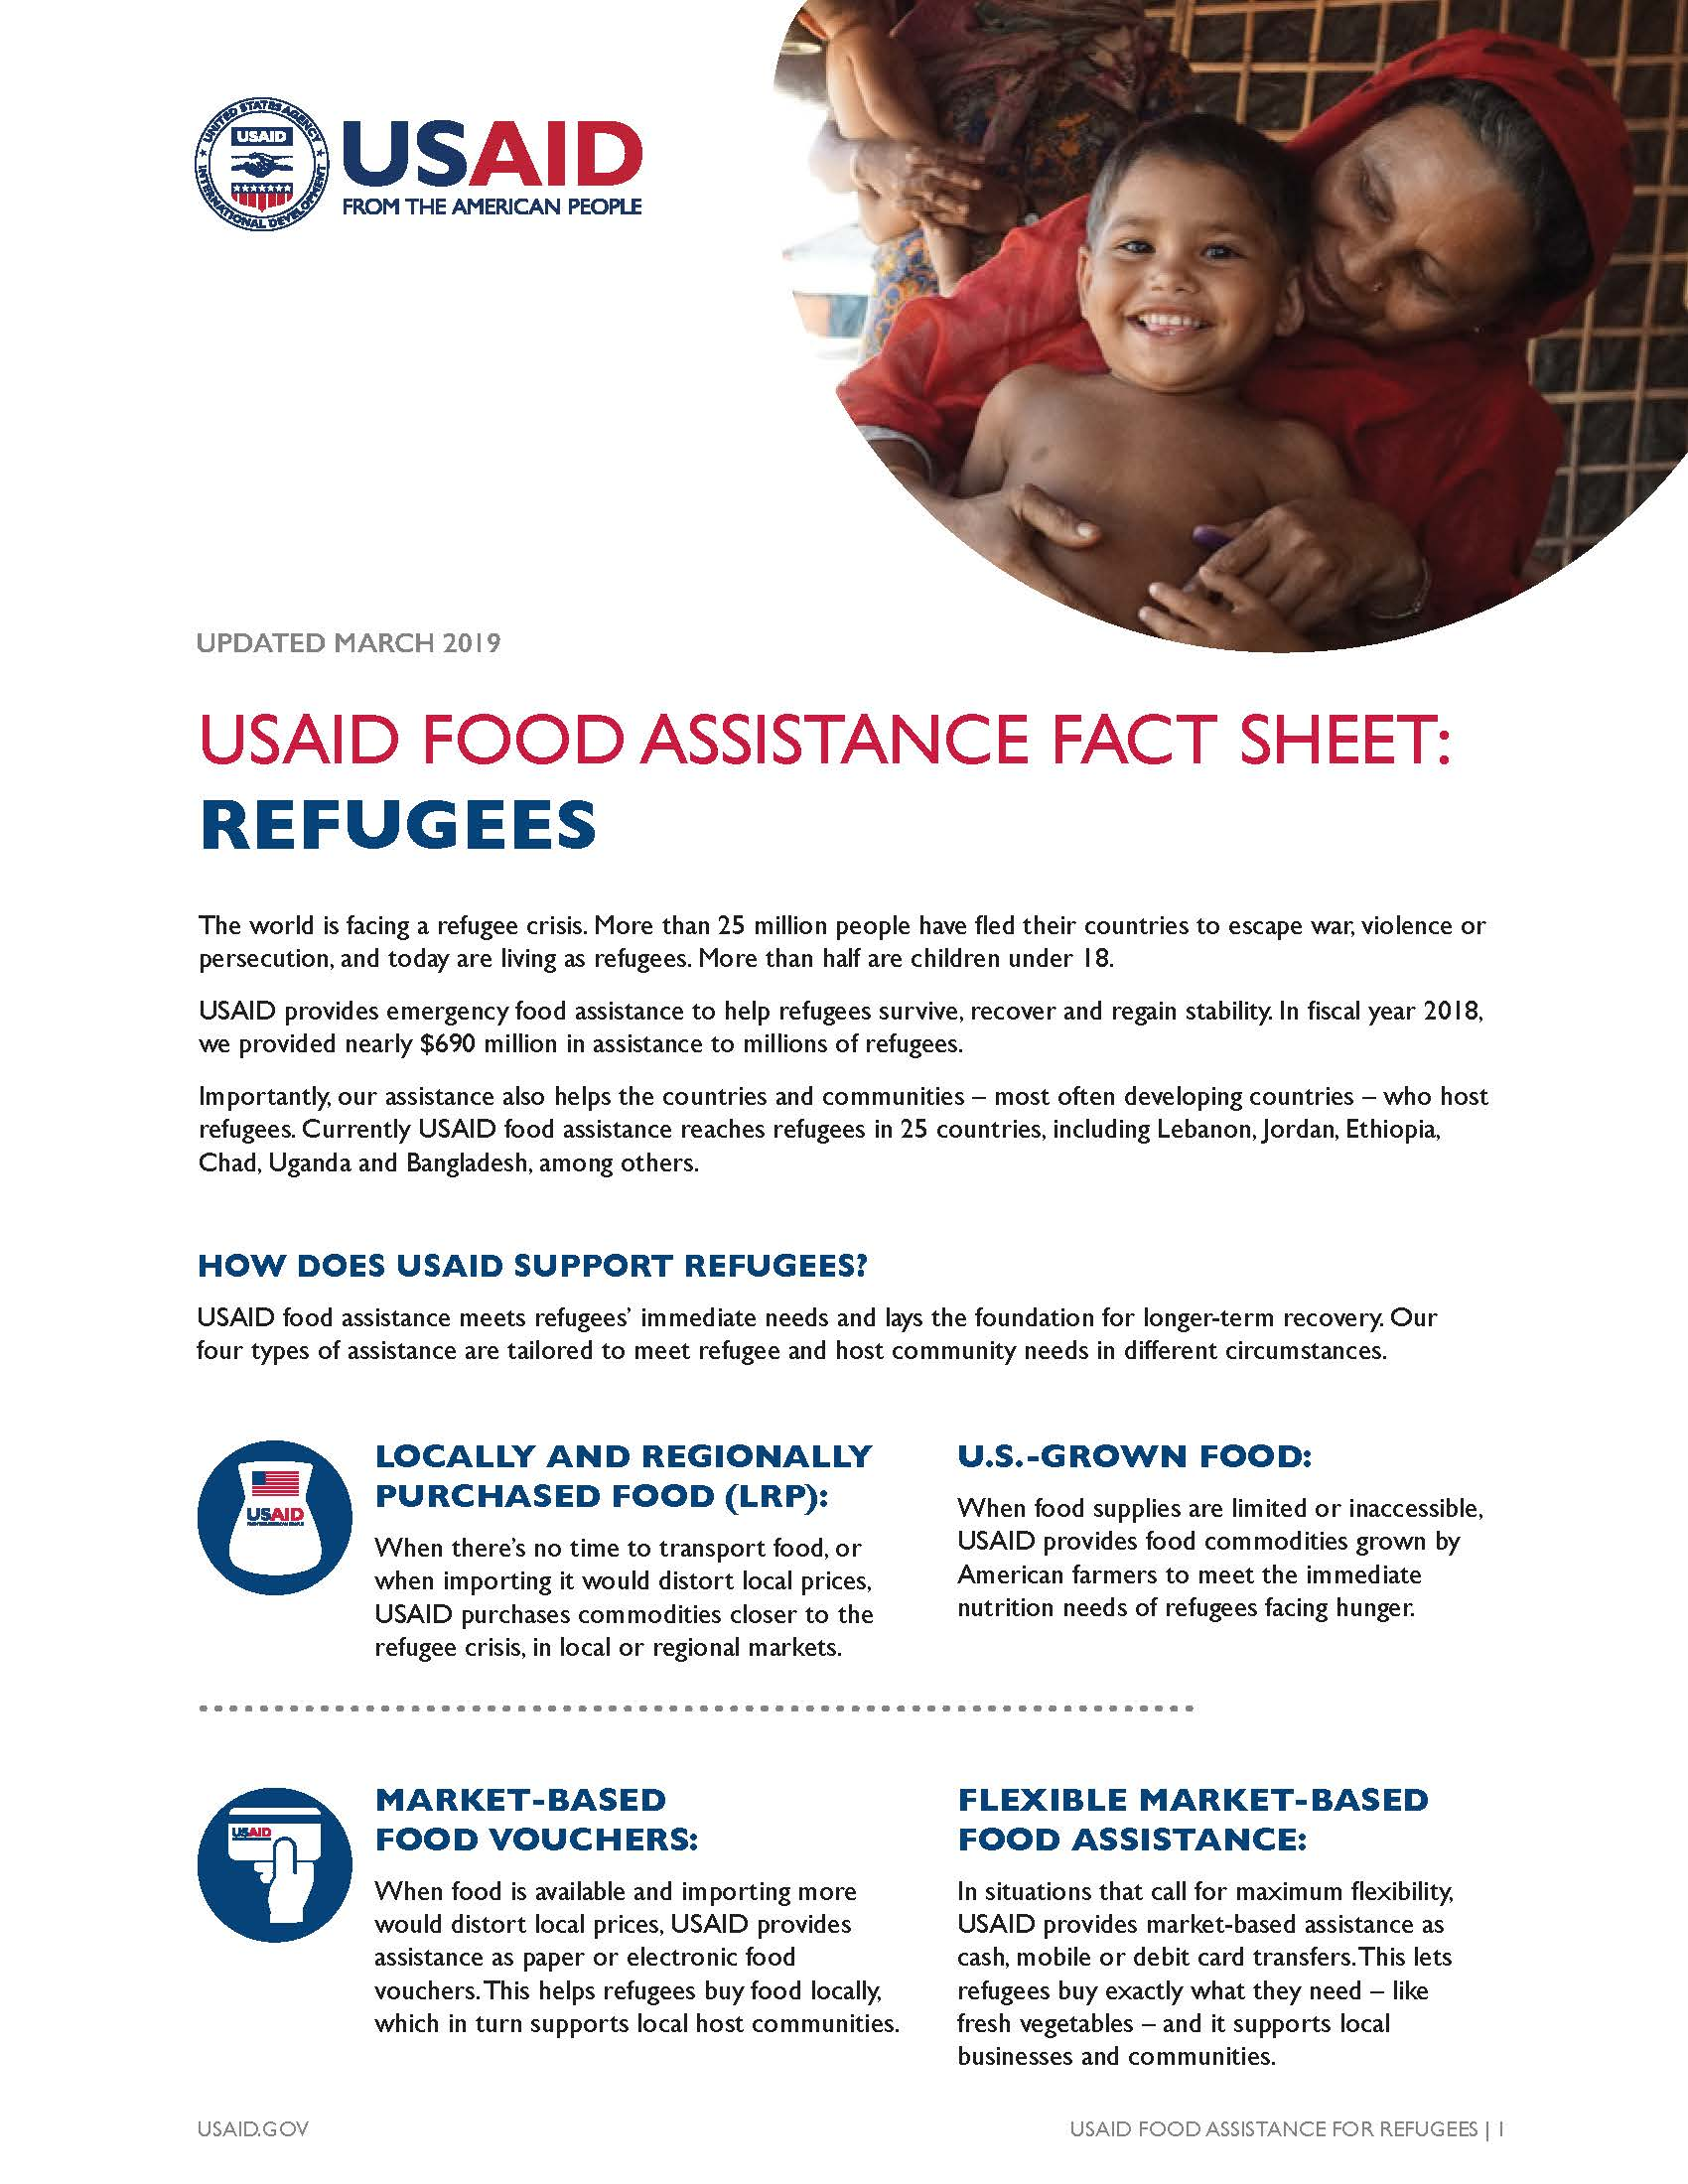 Food Assistance Fact Sheet - Supporting Refugees